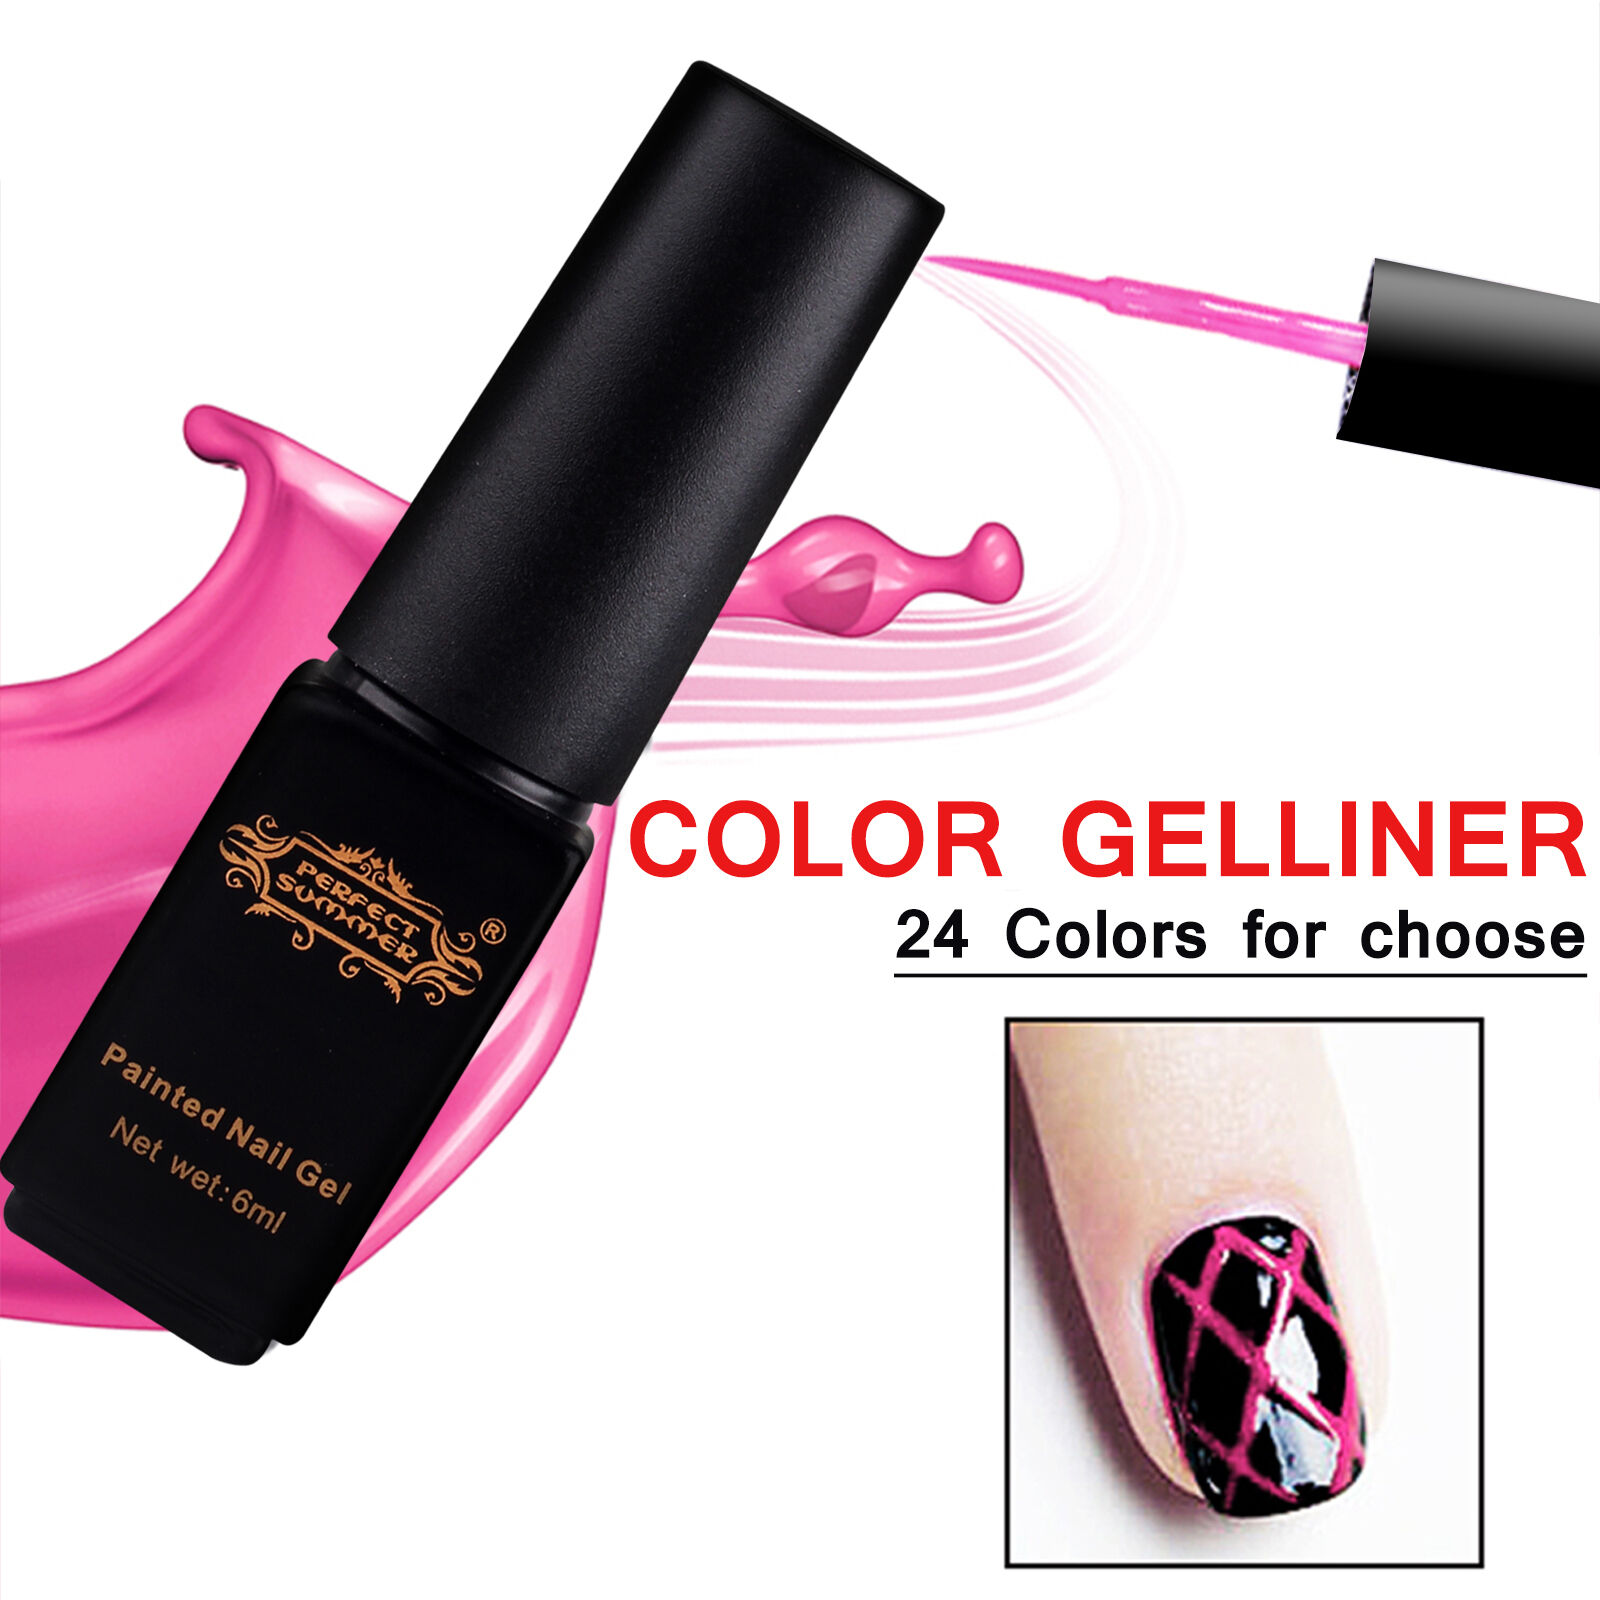 Nail gel polish for sale